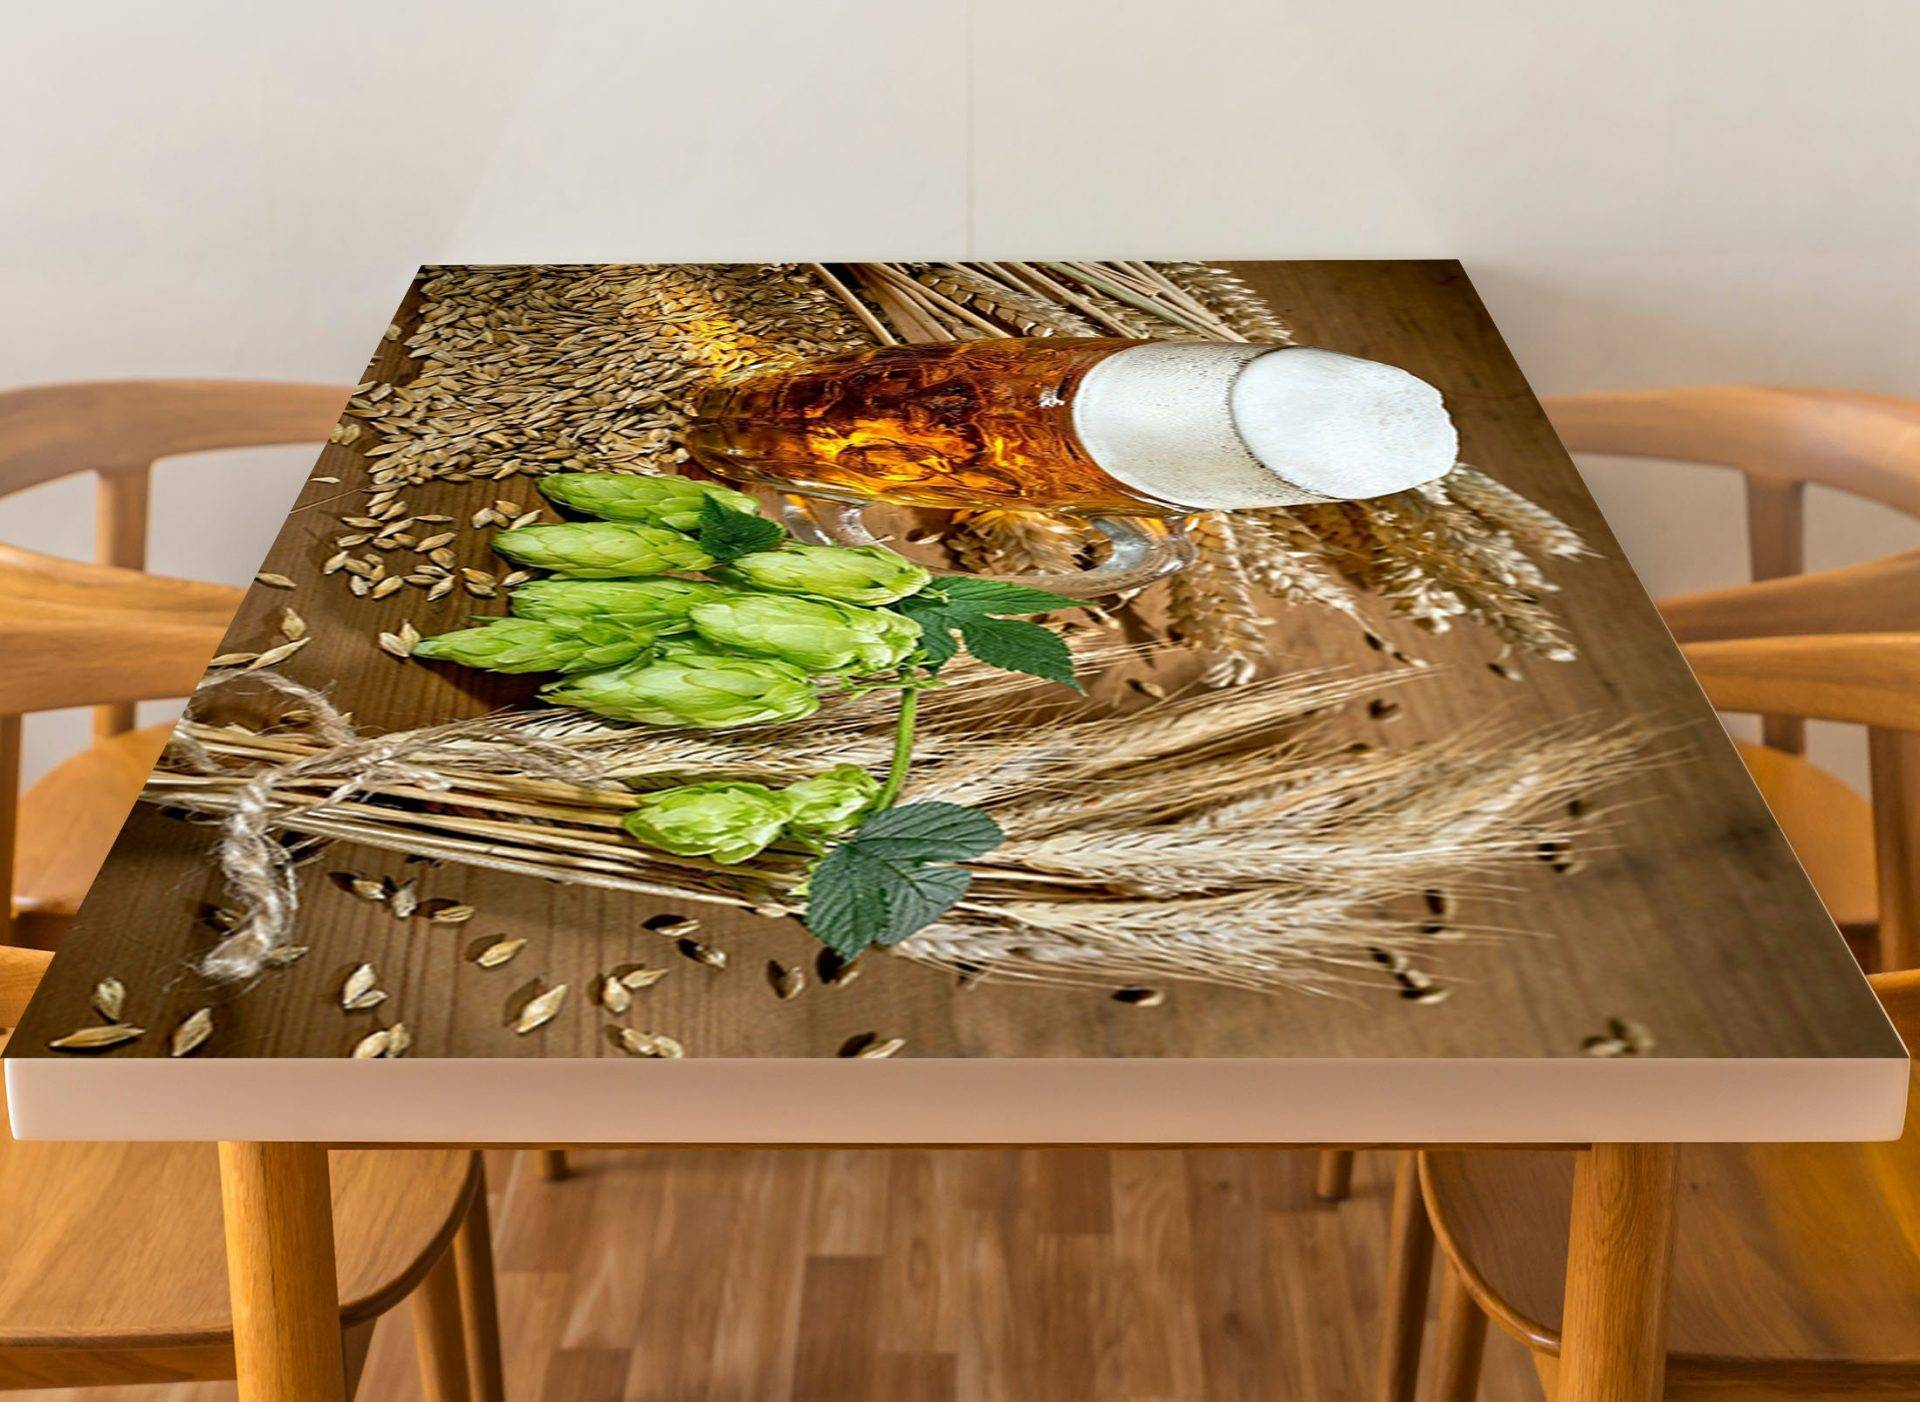 Hops Grain Beer Laminated Vinyl Cover Self-Adhesive for Desk and Tables